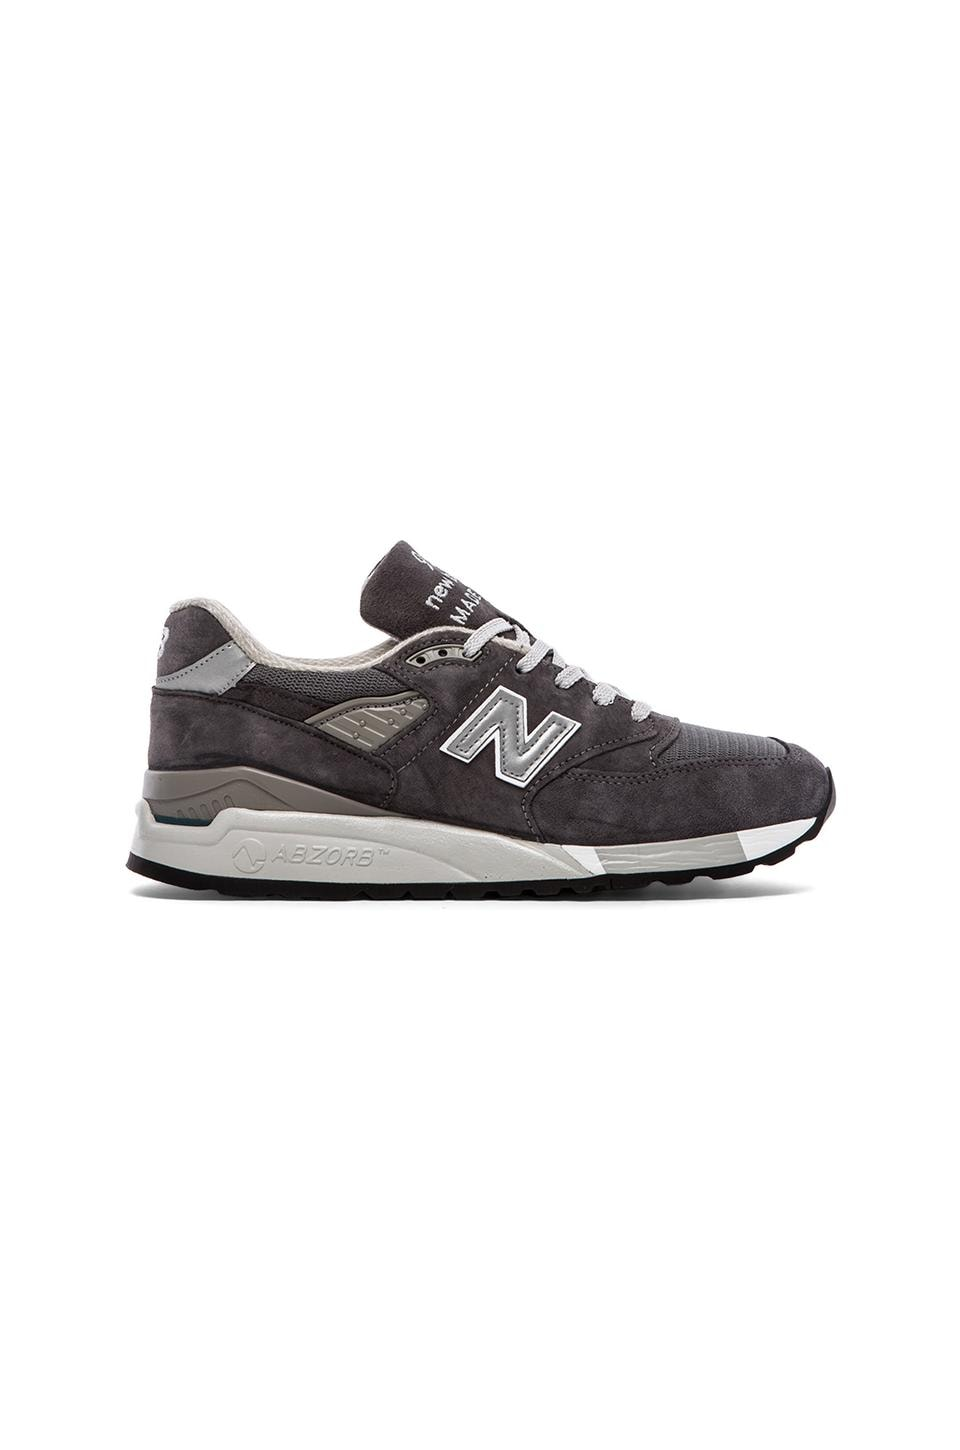 New Balance Made in USA M998 in Charcoal Suede